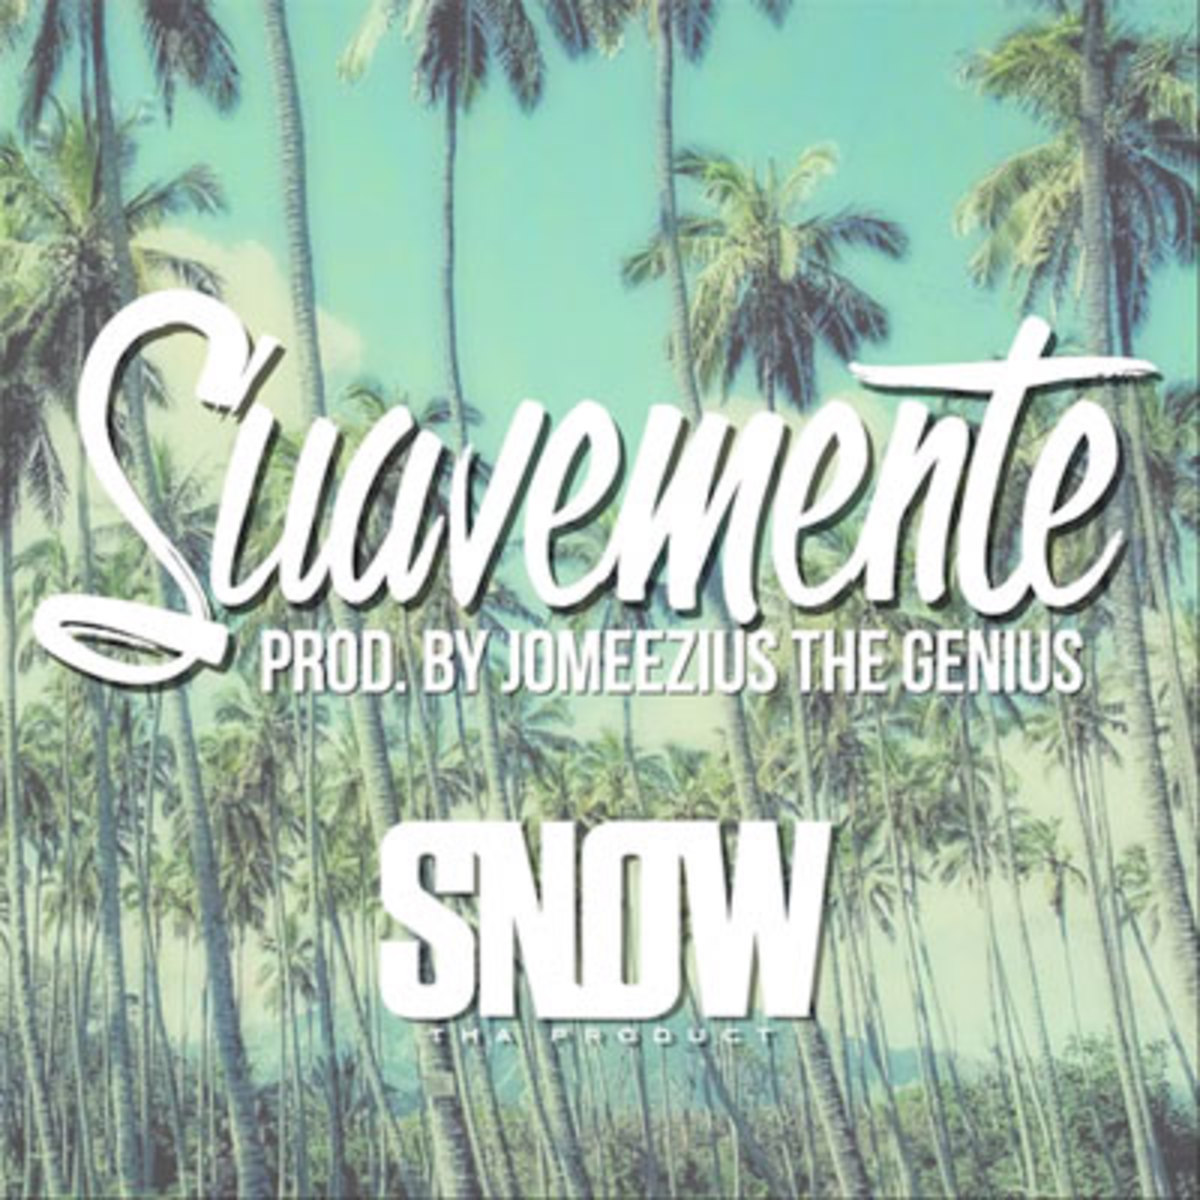 snow-tha-product-suavemente.jpg